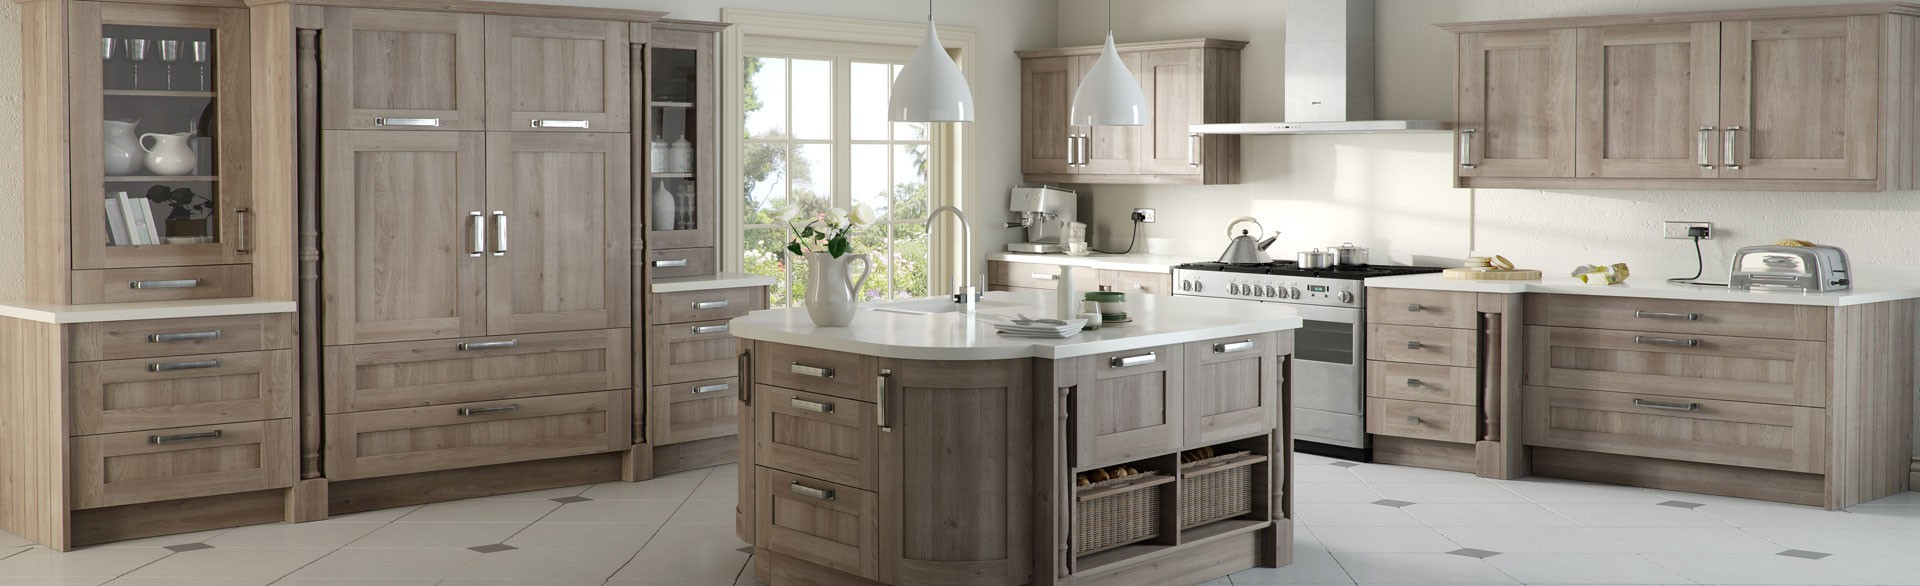 Kitchen with Island and larder